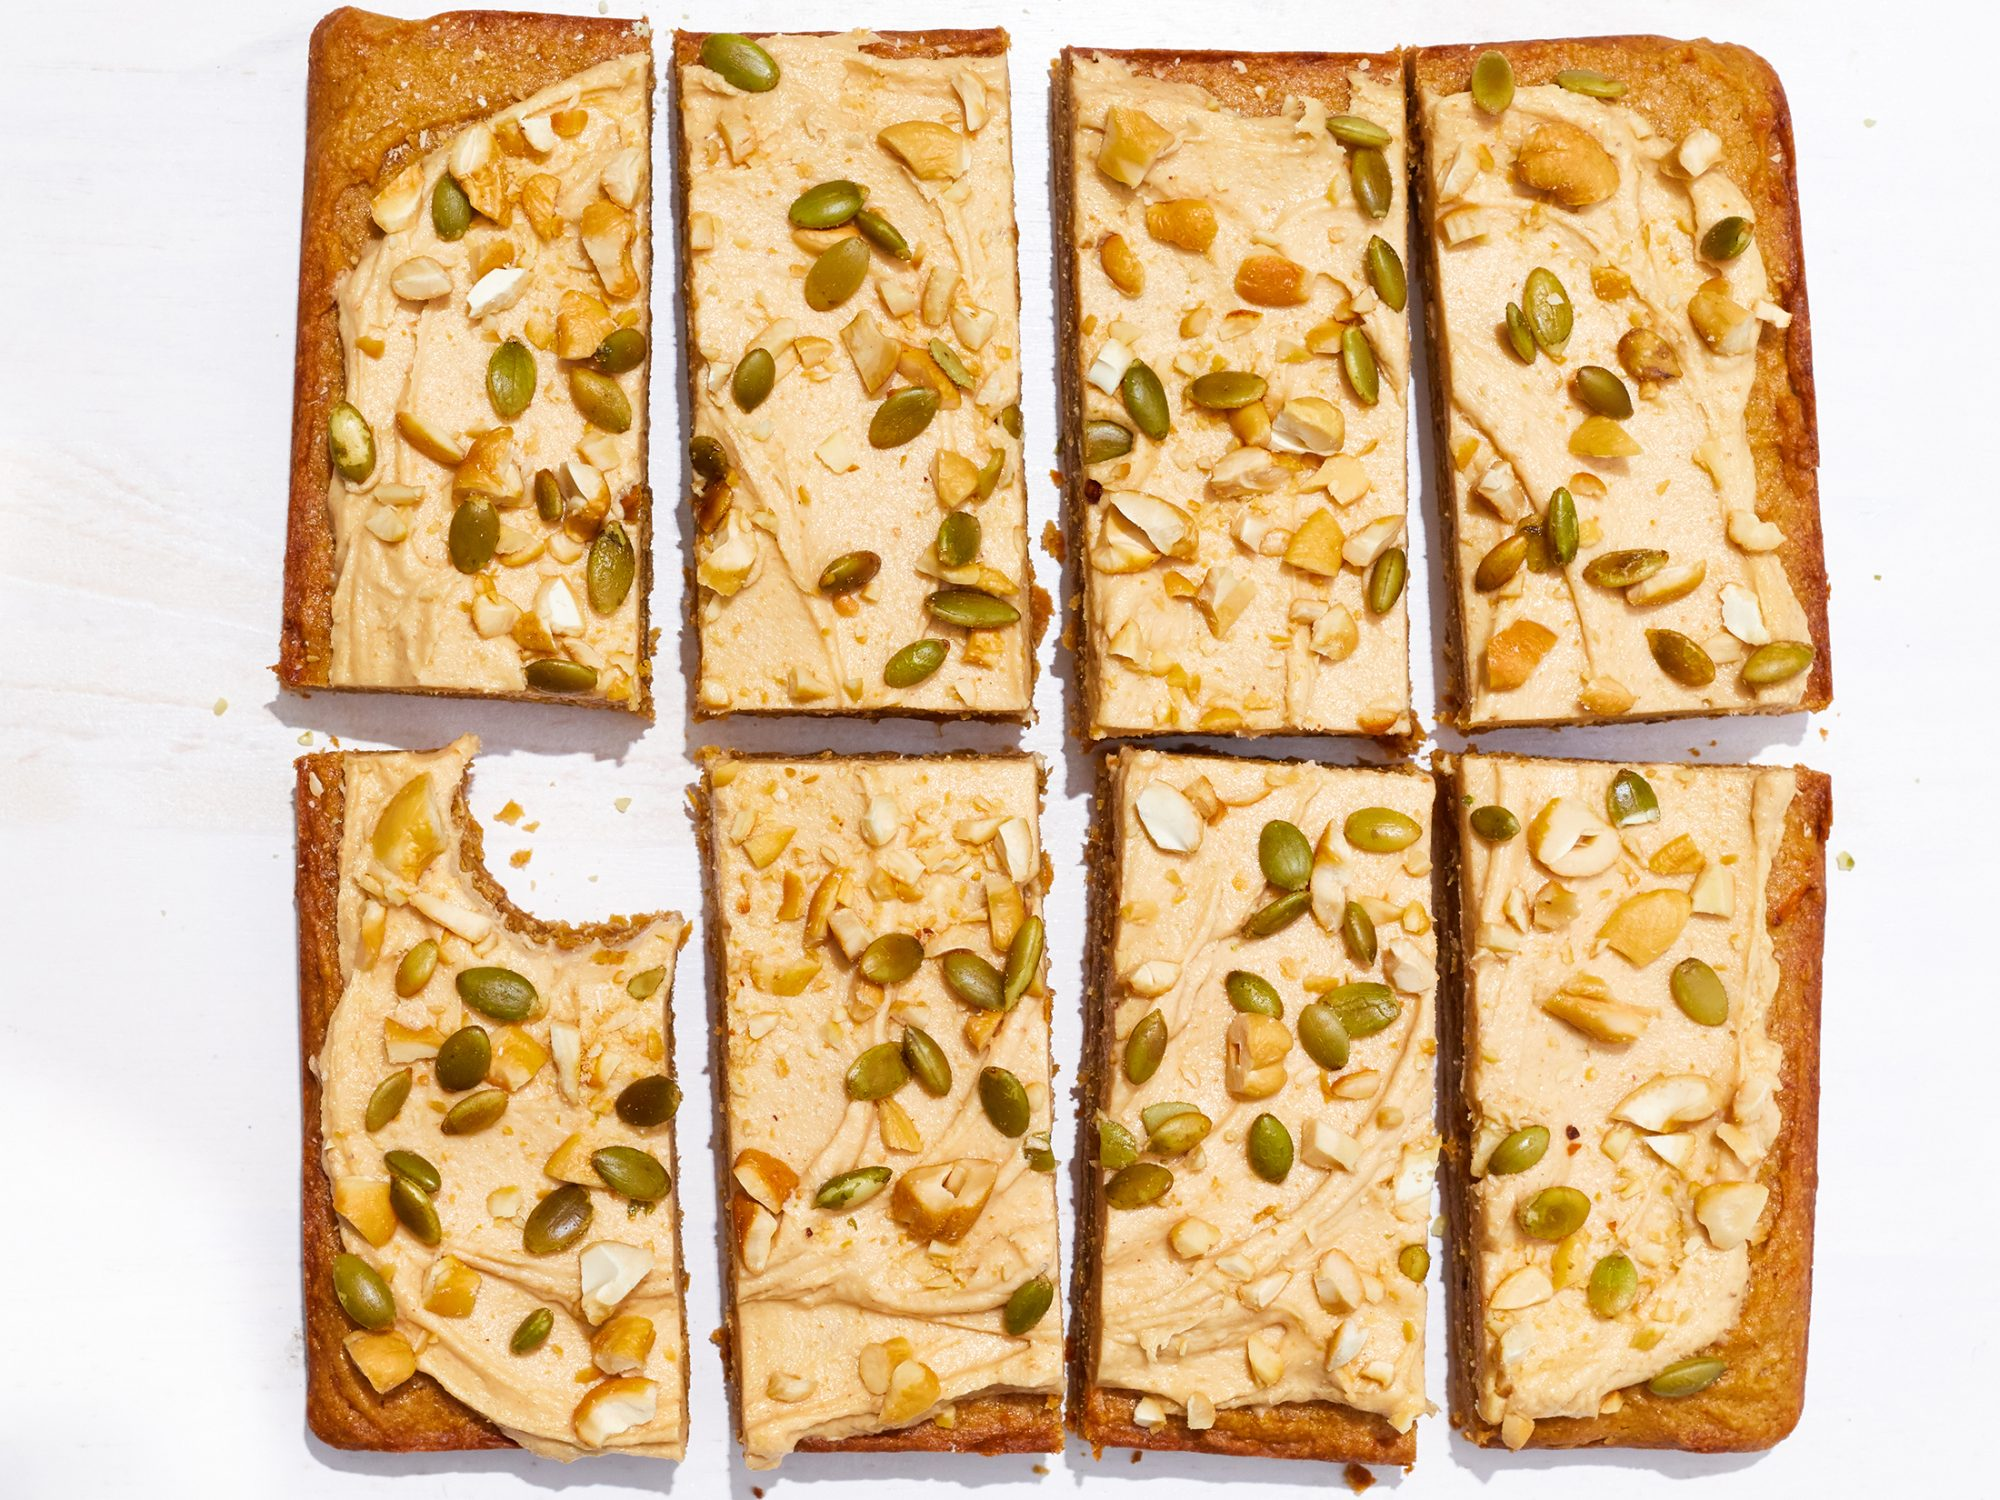 Butternut-Nut Butter Bars